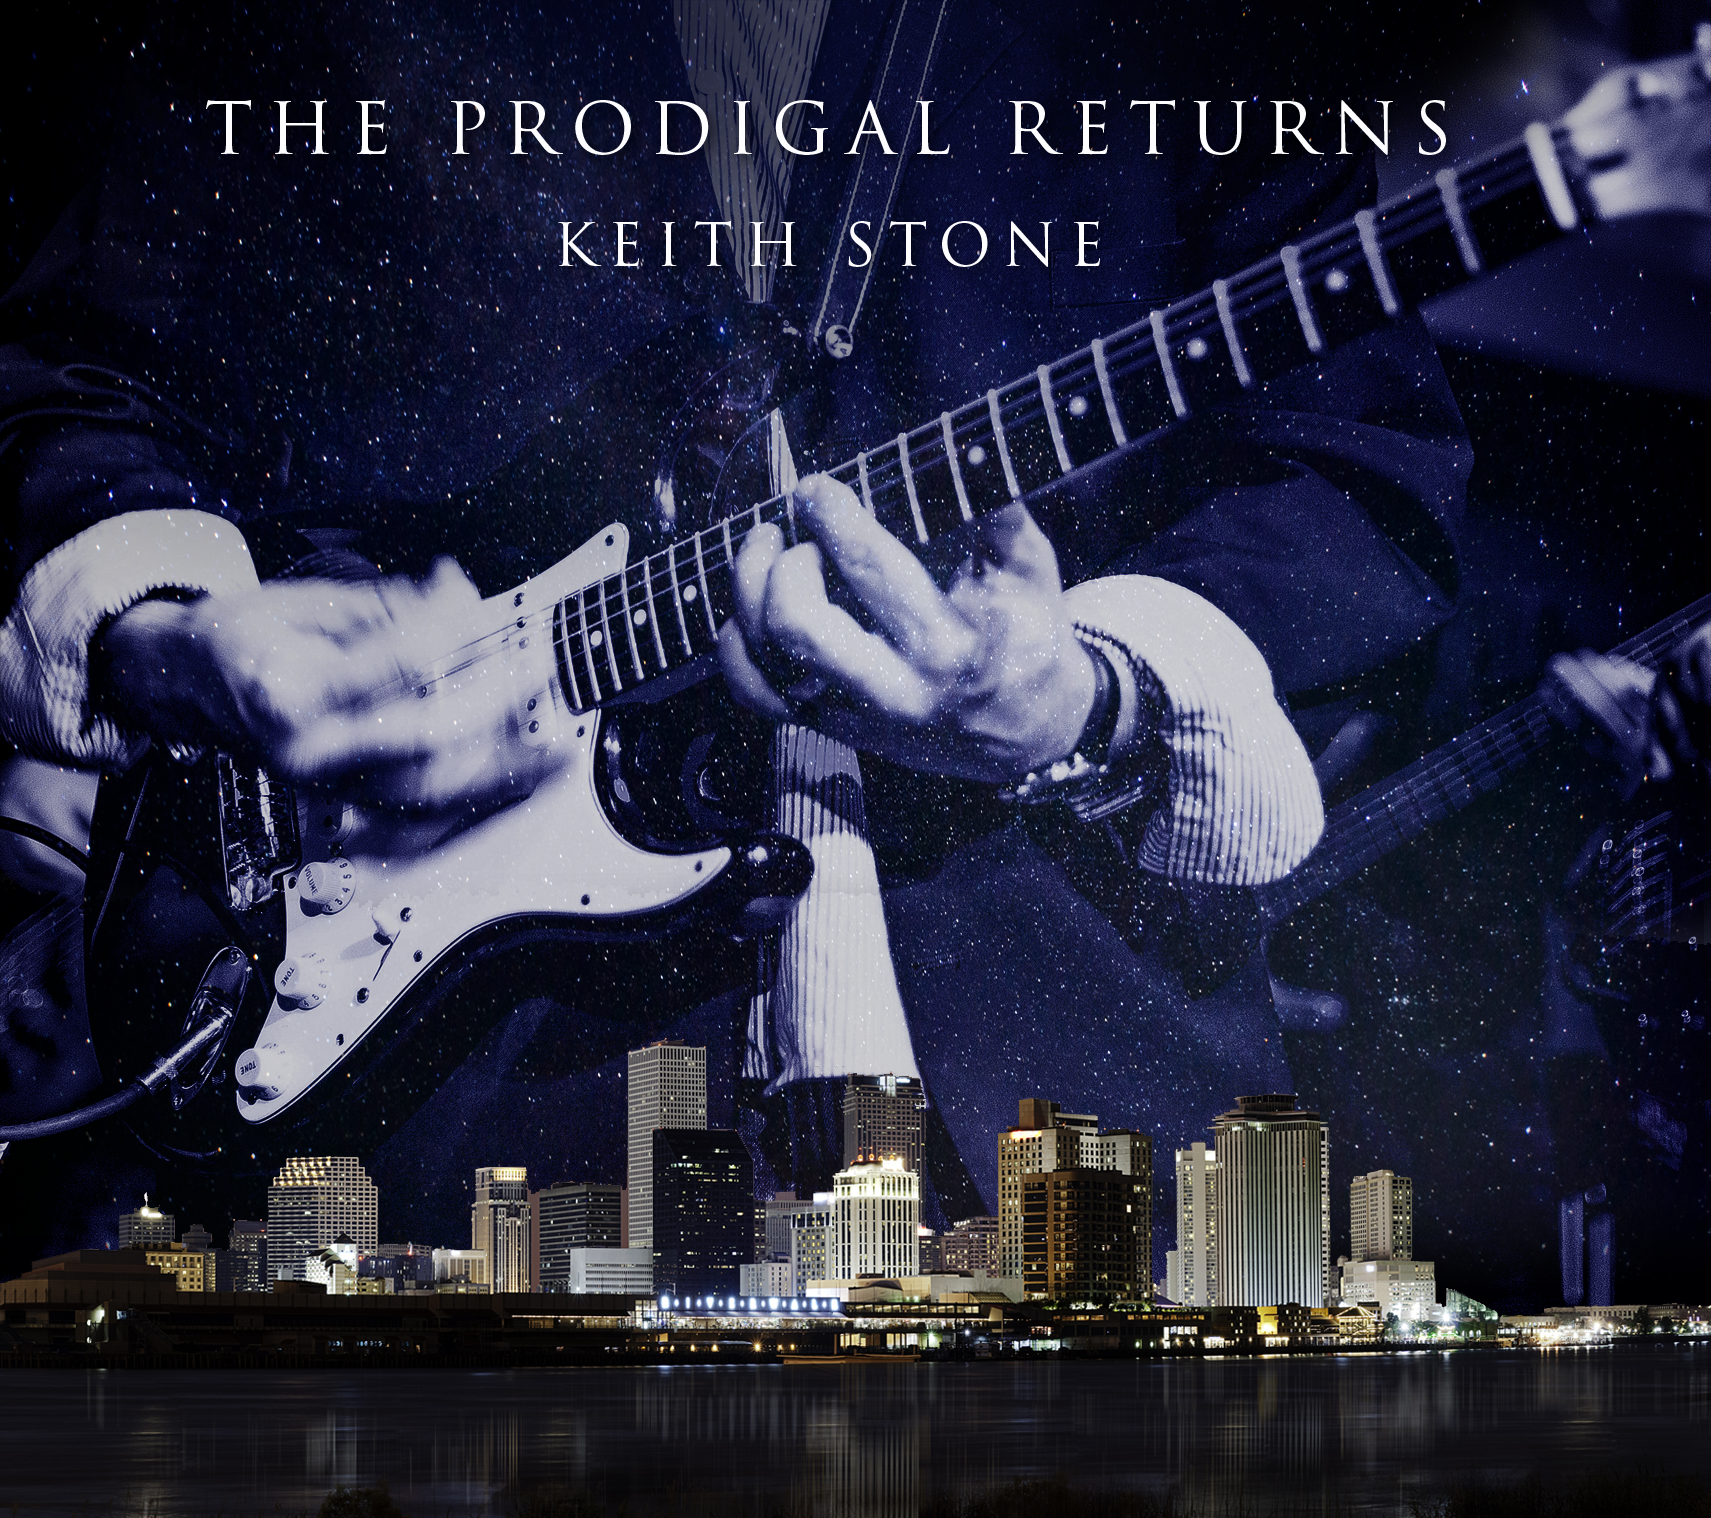 Keith Stone: The Prodigal Returns (MP3 DOWNLOAD) — keithstonemusic com